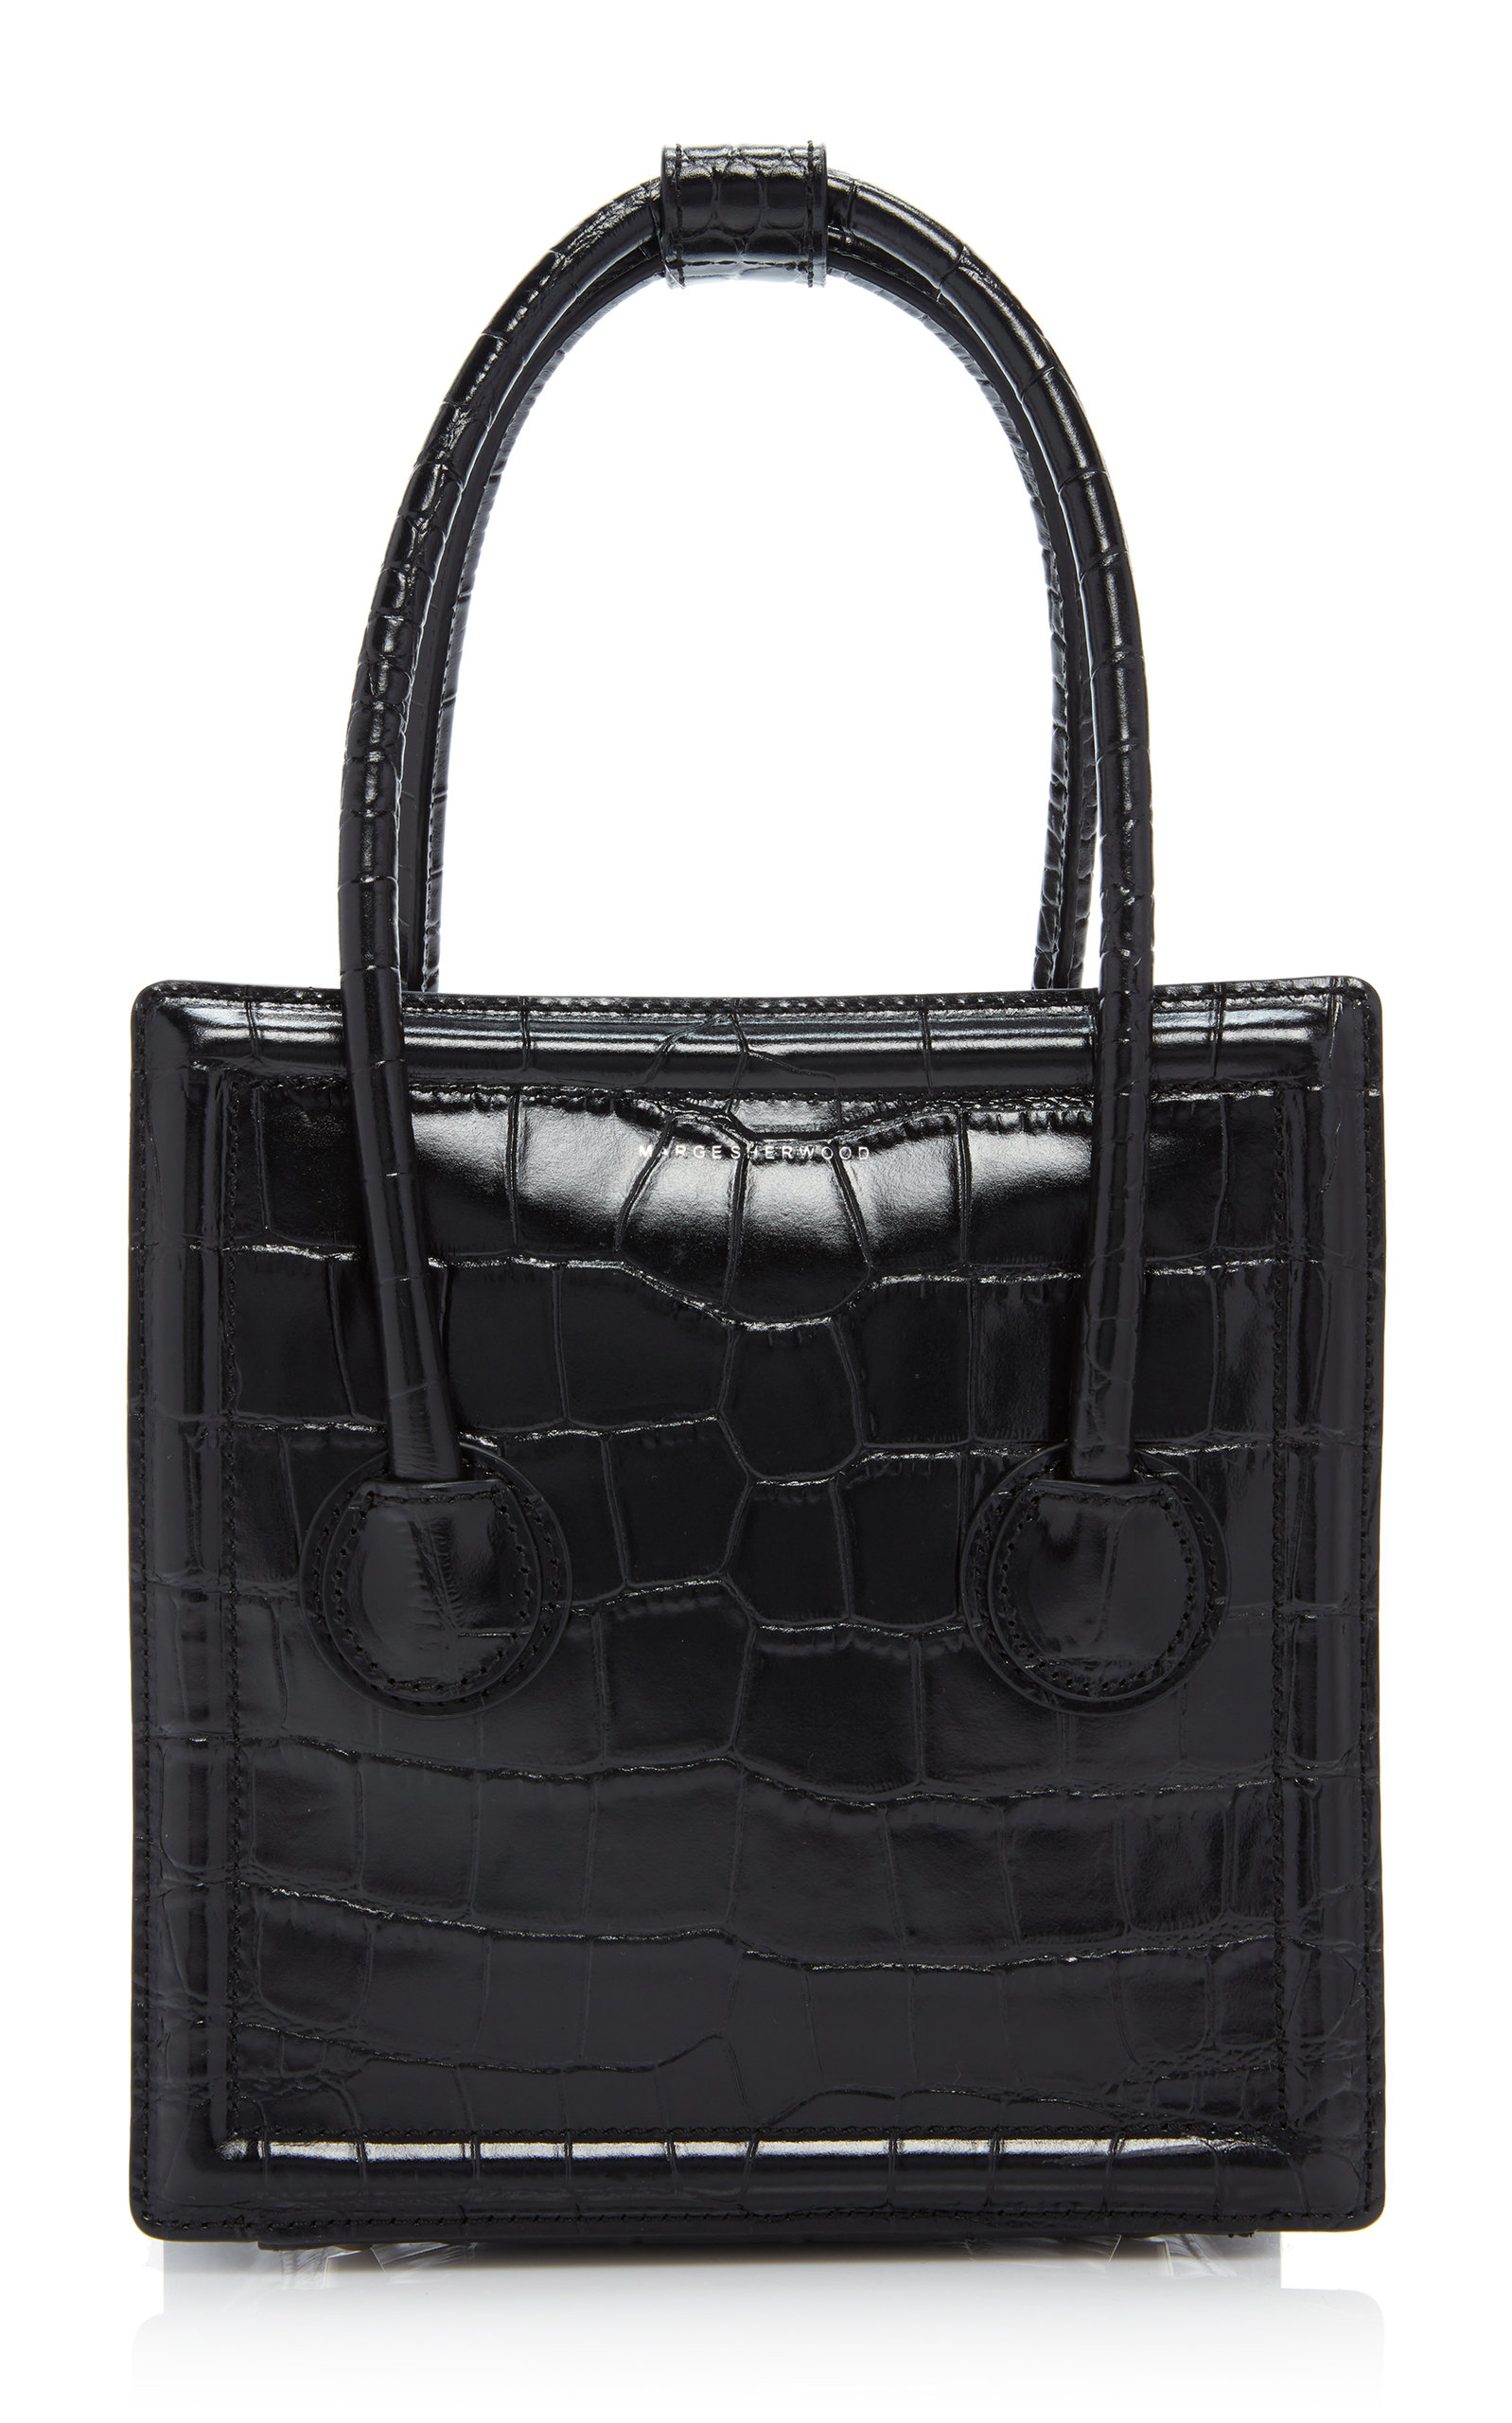 Marge Sherwood BOSTON S CROC-EFFECT LEATHER TOP HANDLE BAG